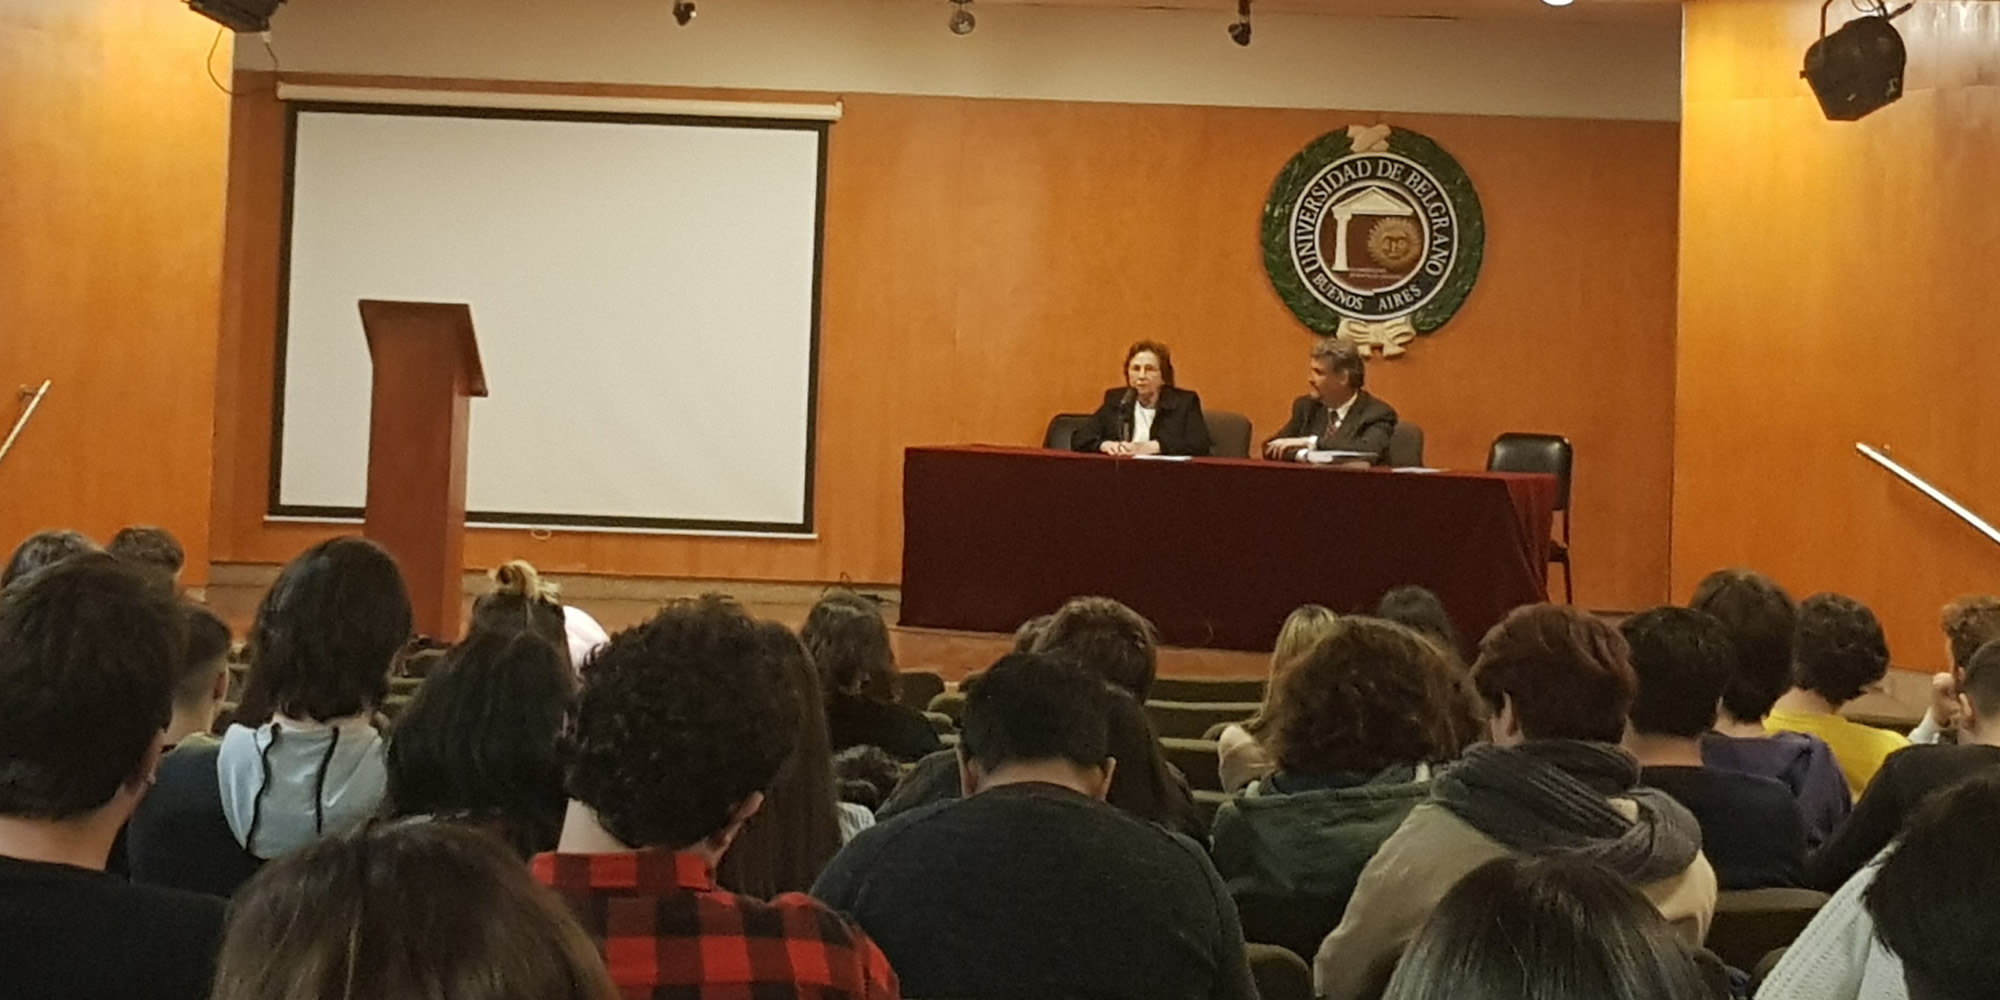 Presentation of a book on anti-Semitism at the University of Belgrano